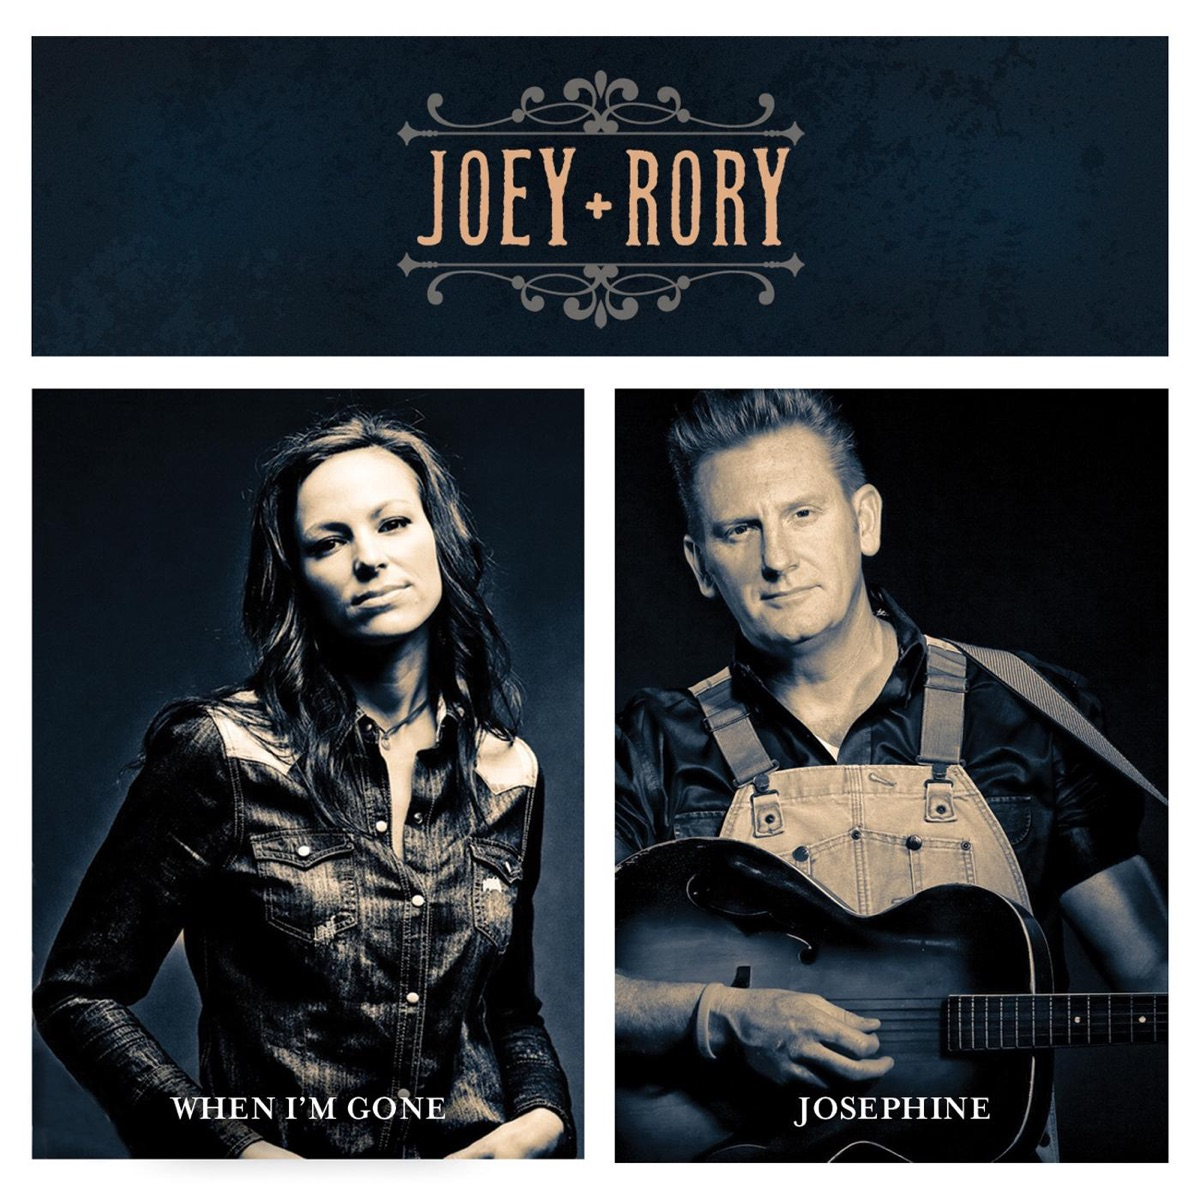 When I\'m Gone / Josephine - Single Album Cover by Joey + Rory